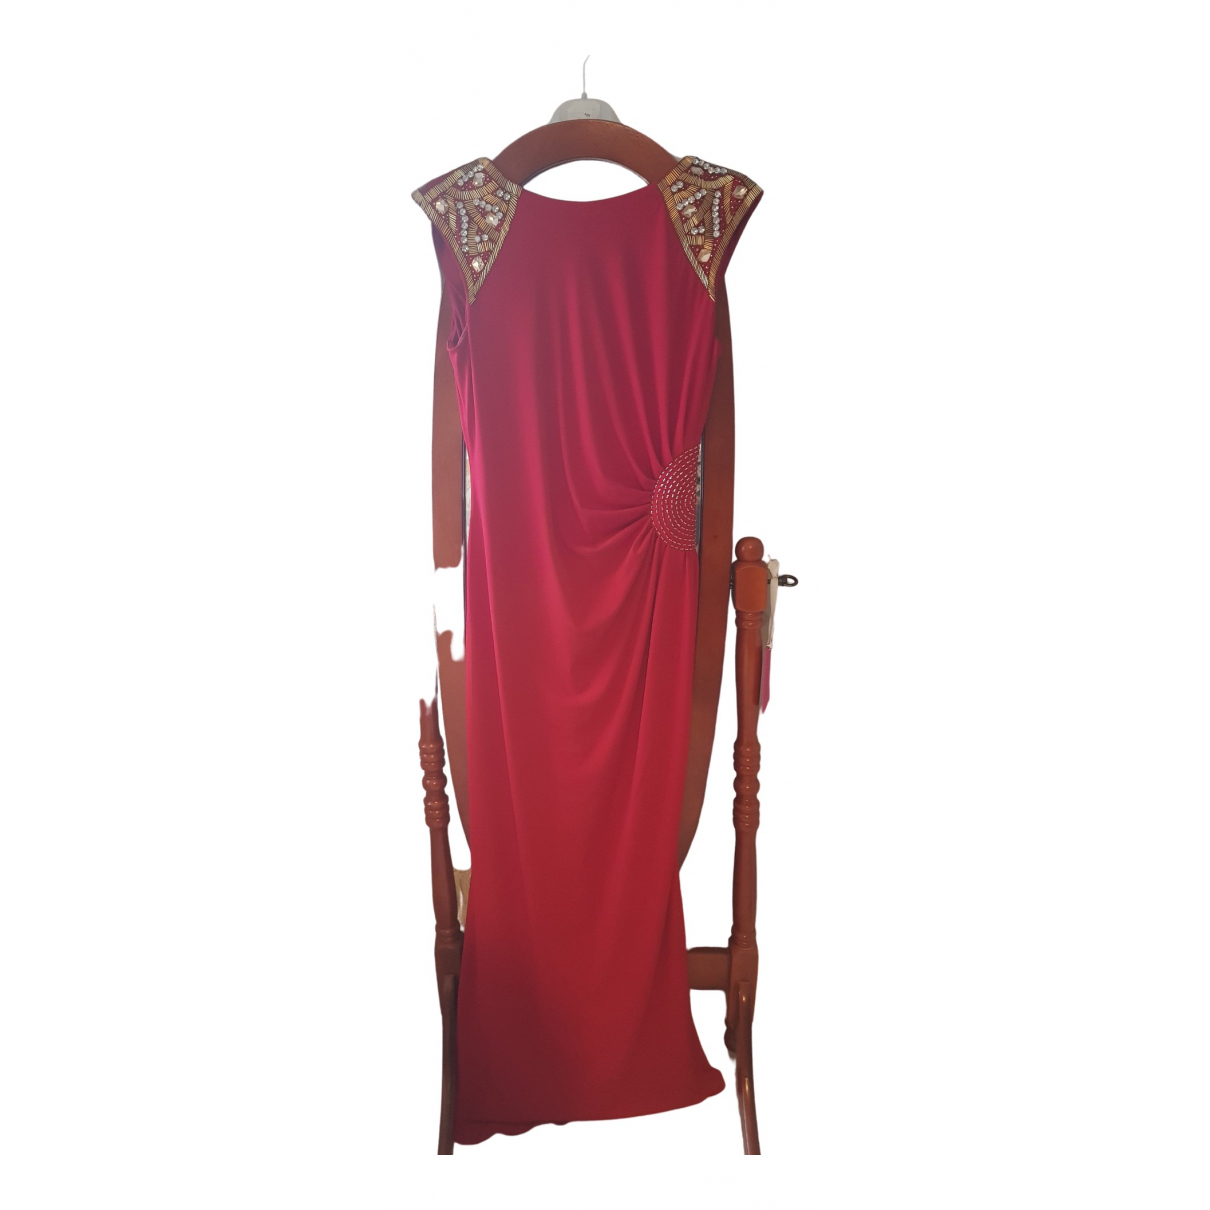 Js Collections \N Kleid in  Rot Polyester